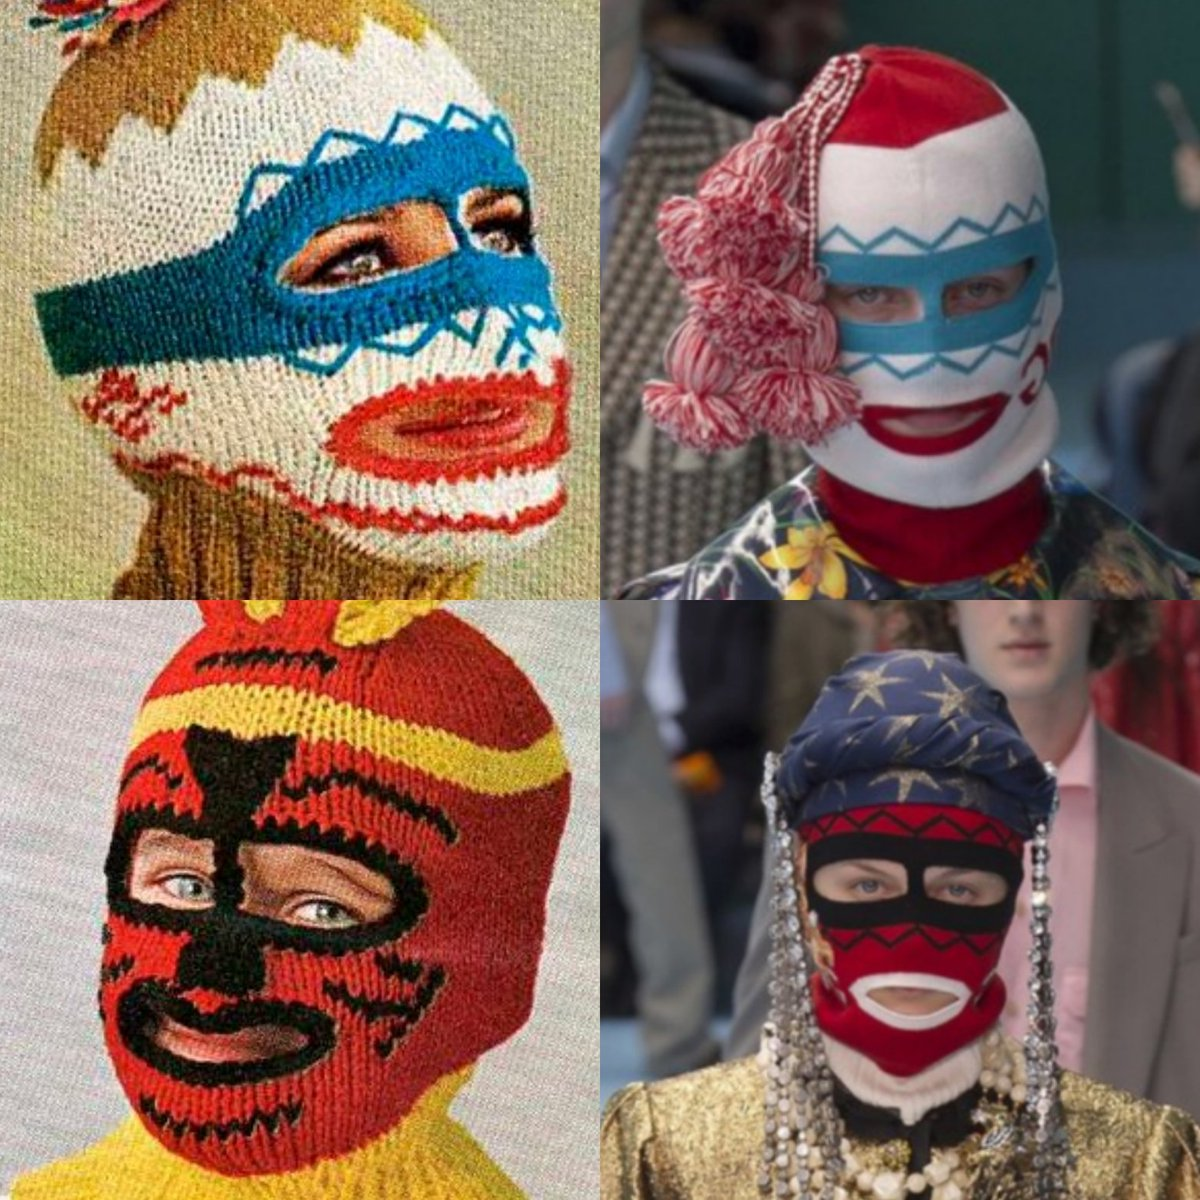 618eec501674 On the left are ski mask knitting patterns from late 70s and on the right  Gucci Fall 2018 balaclava masks. Same same but different